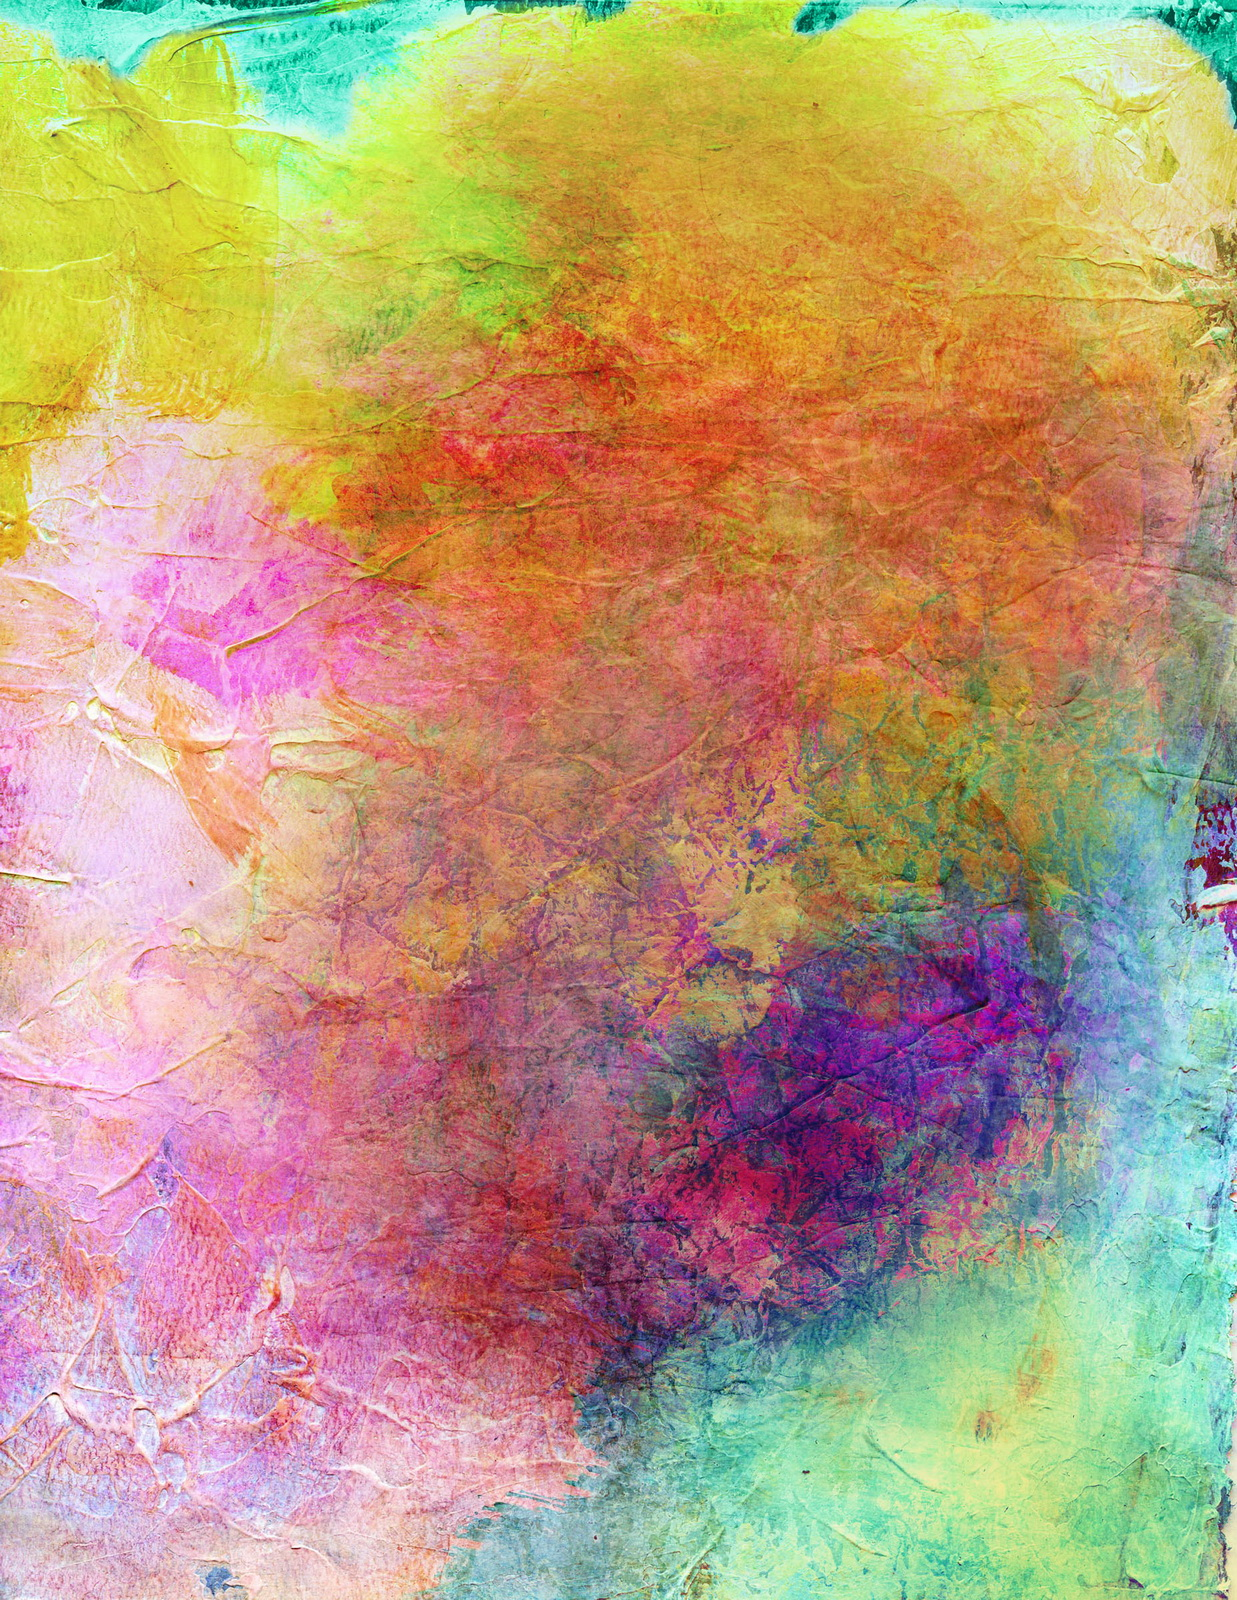 Abstraction paint texture paints background download for Texture paint images